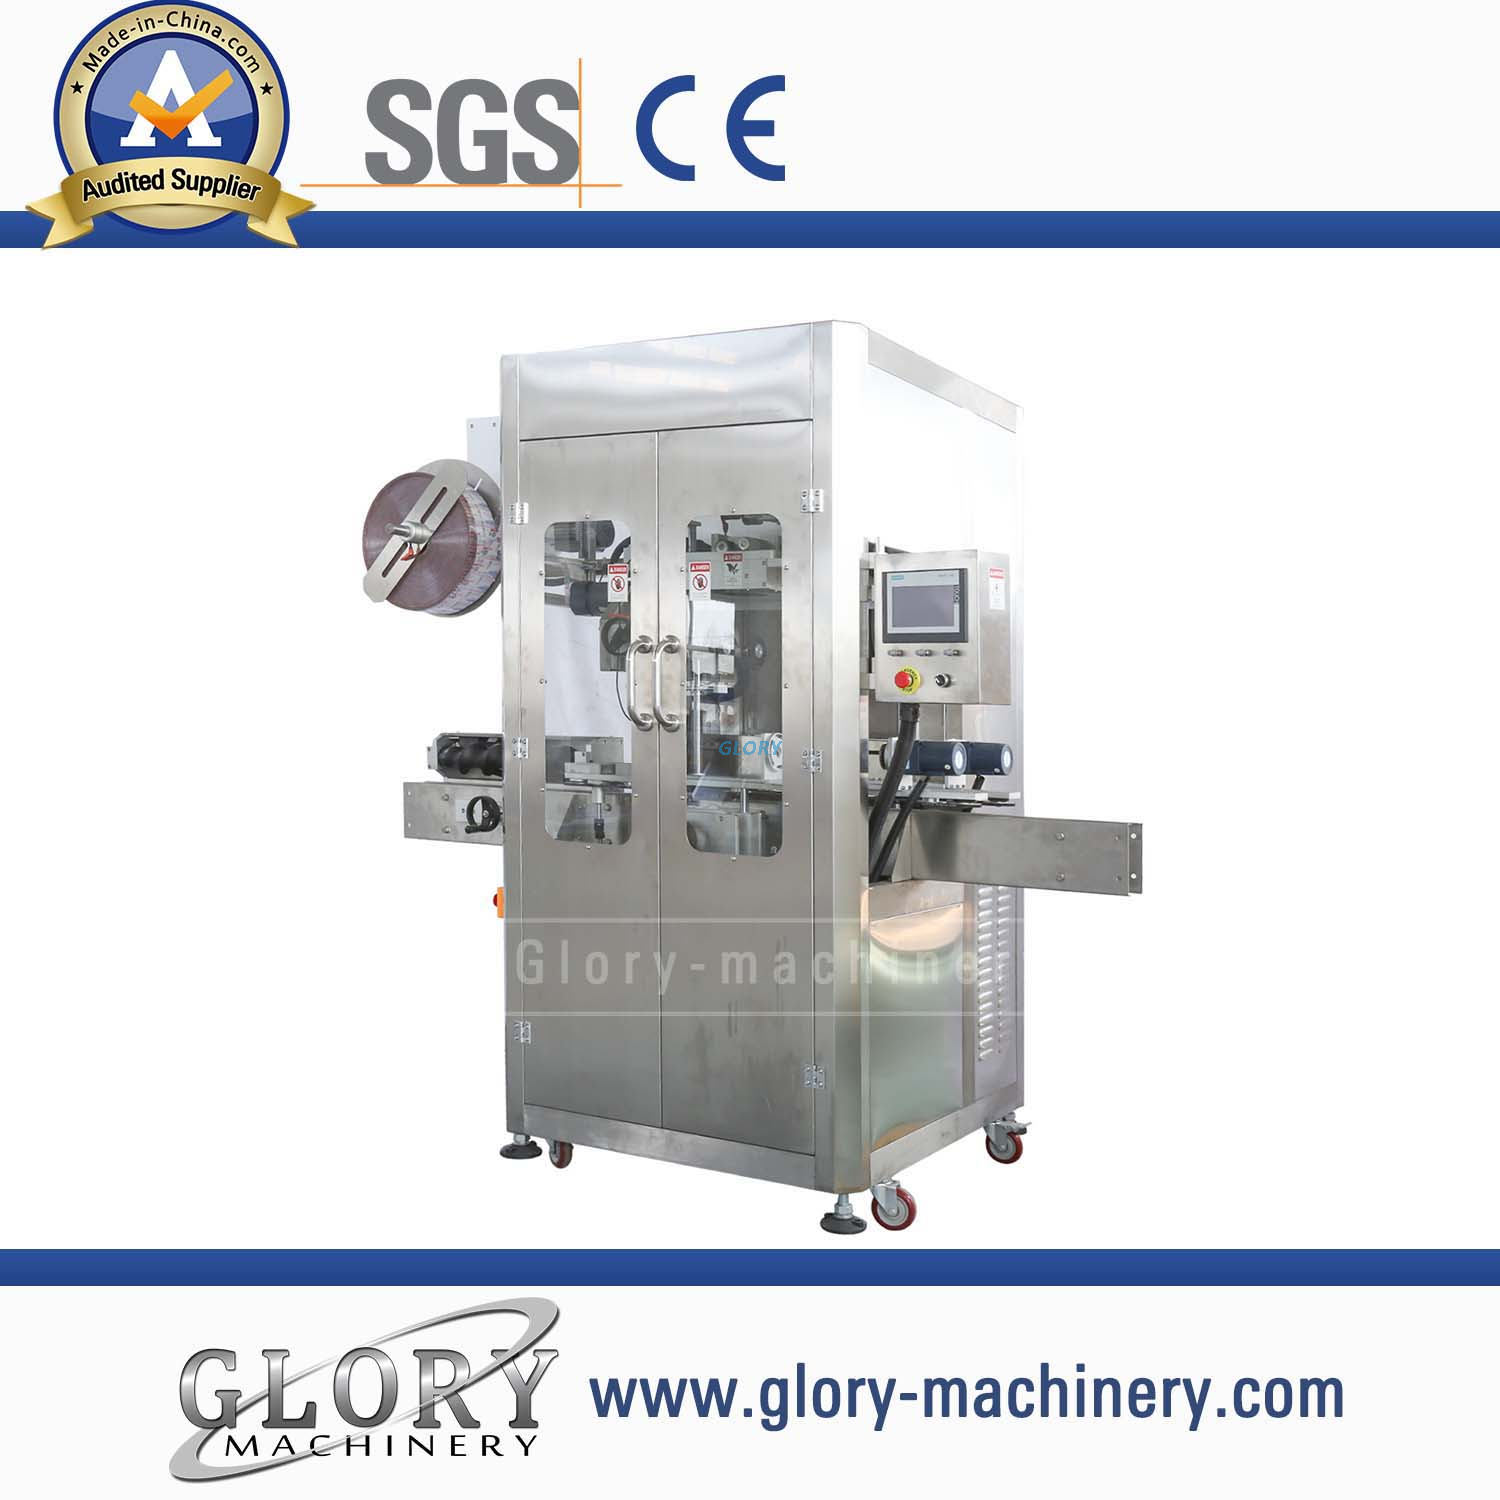 Automatic shrinking sleeve labeling machine